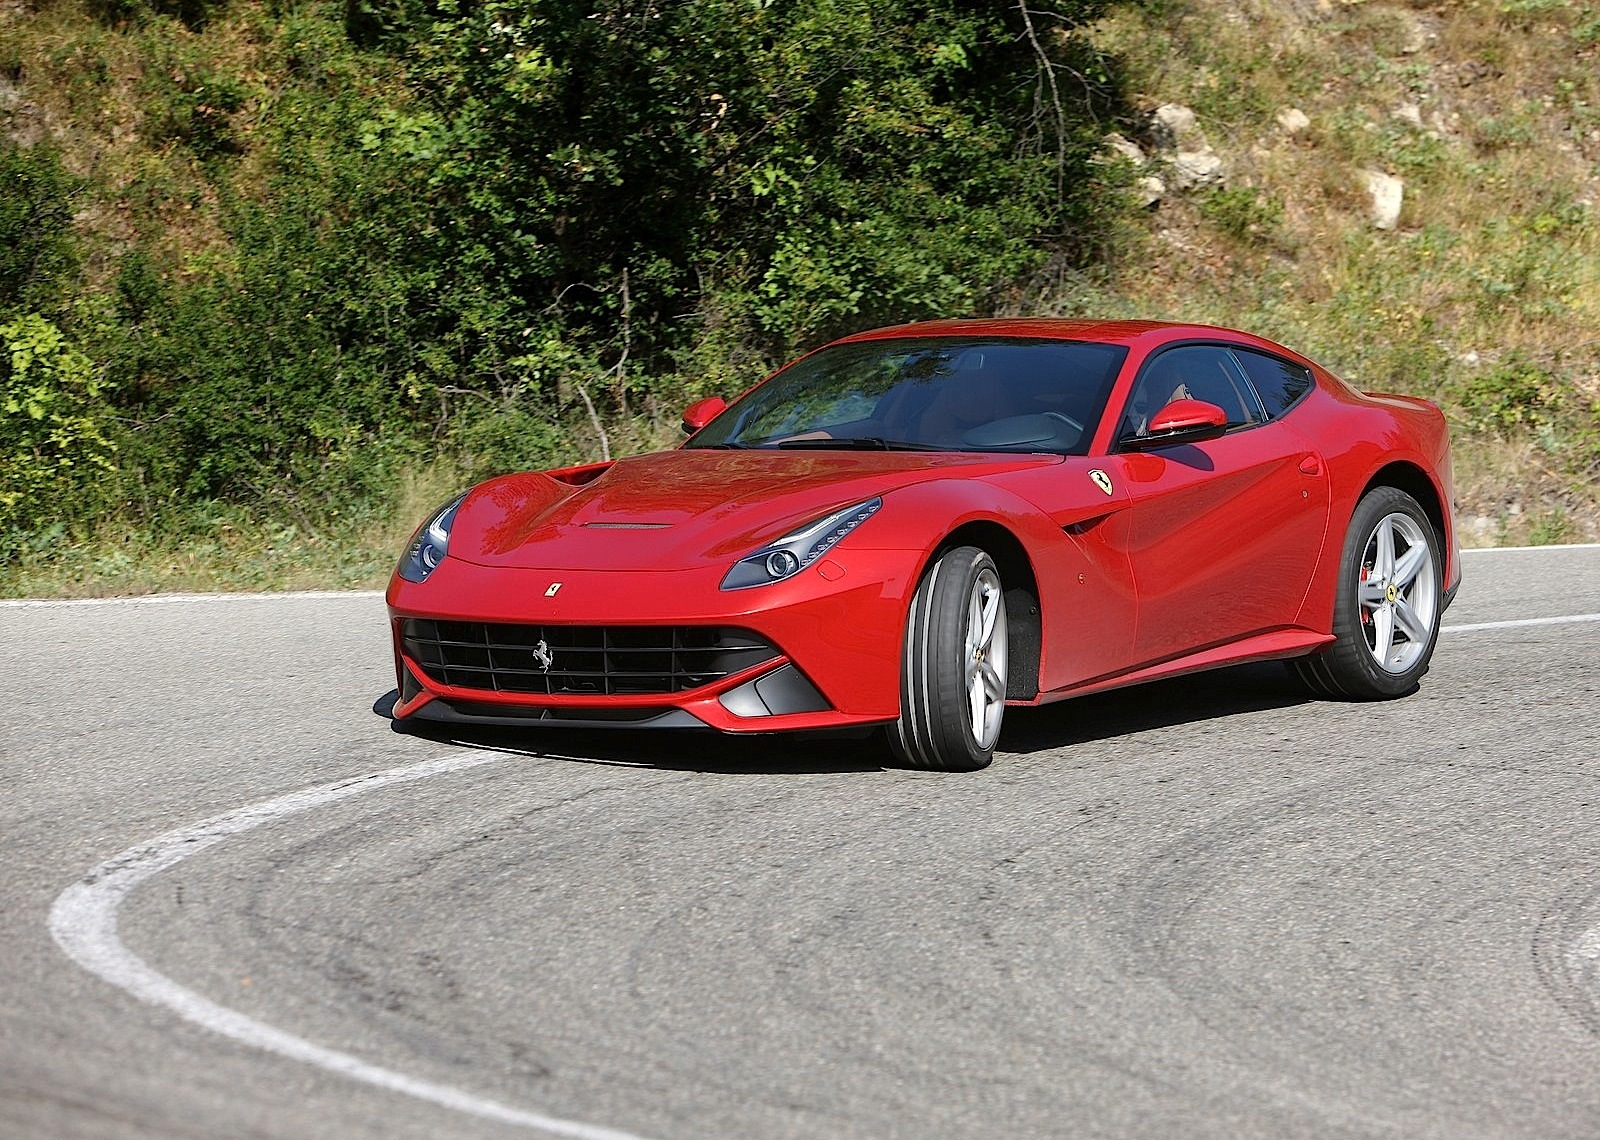 ferrari f12 berlinetta 2012 2013 2014 2015 autoevolution. Black Bedroom Furniture Sets. Home Design Ideas